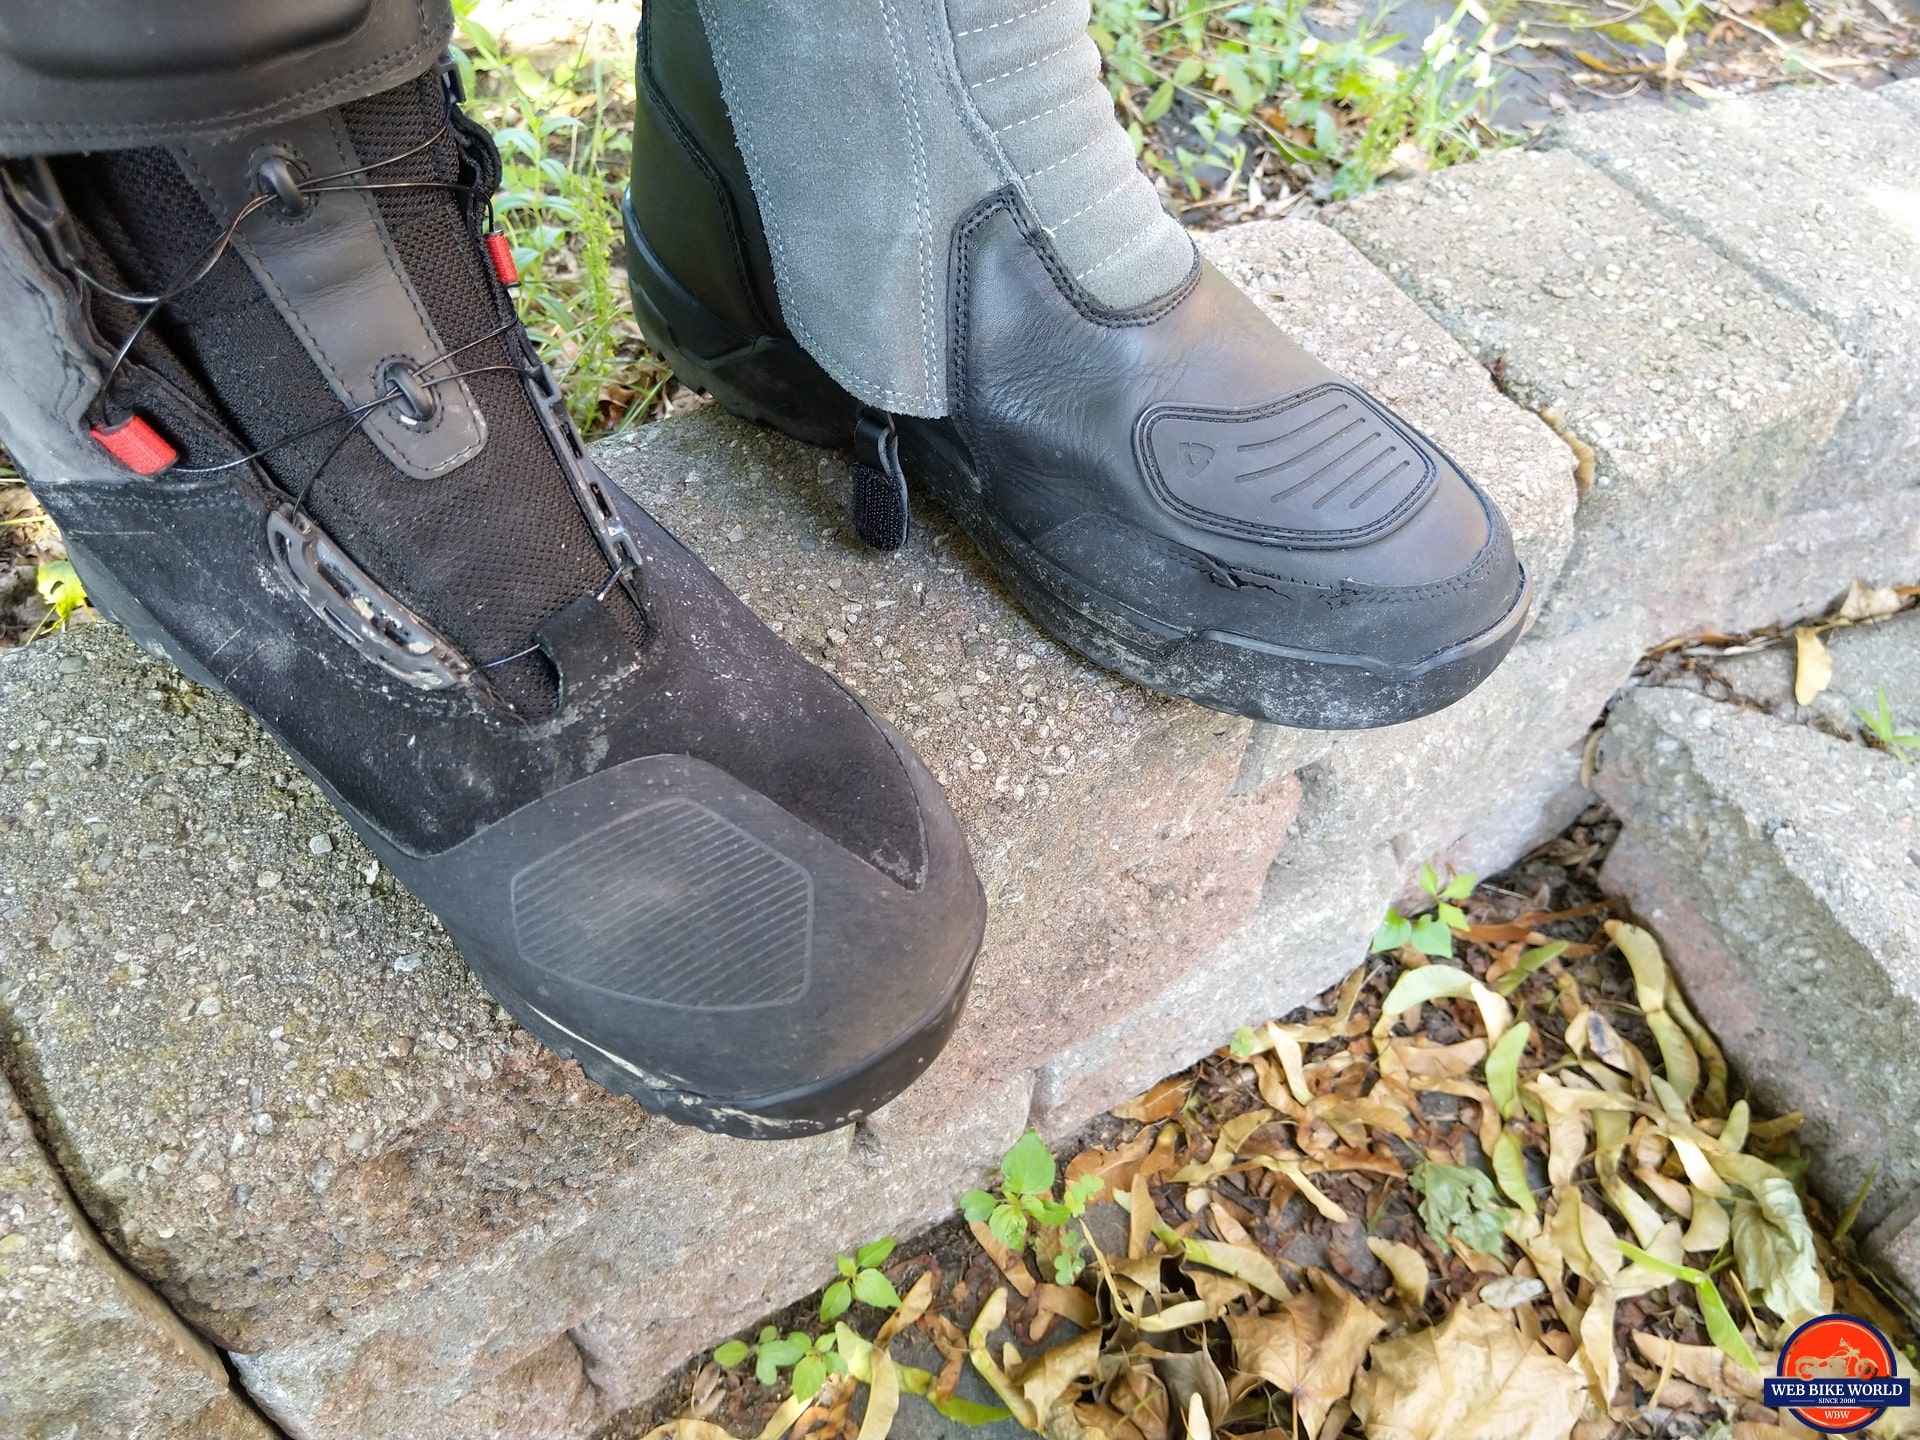 REV'IT! Gravel OutDry Boots rubber seal stitching tear